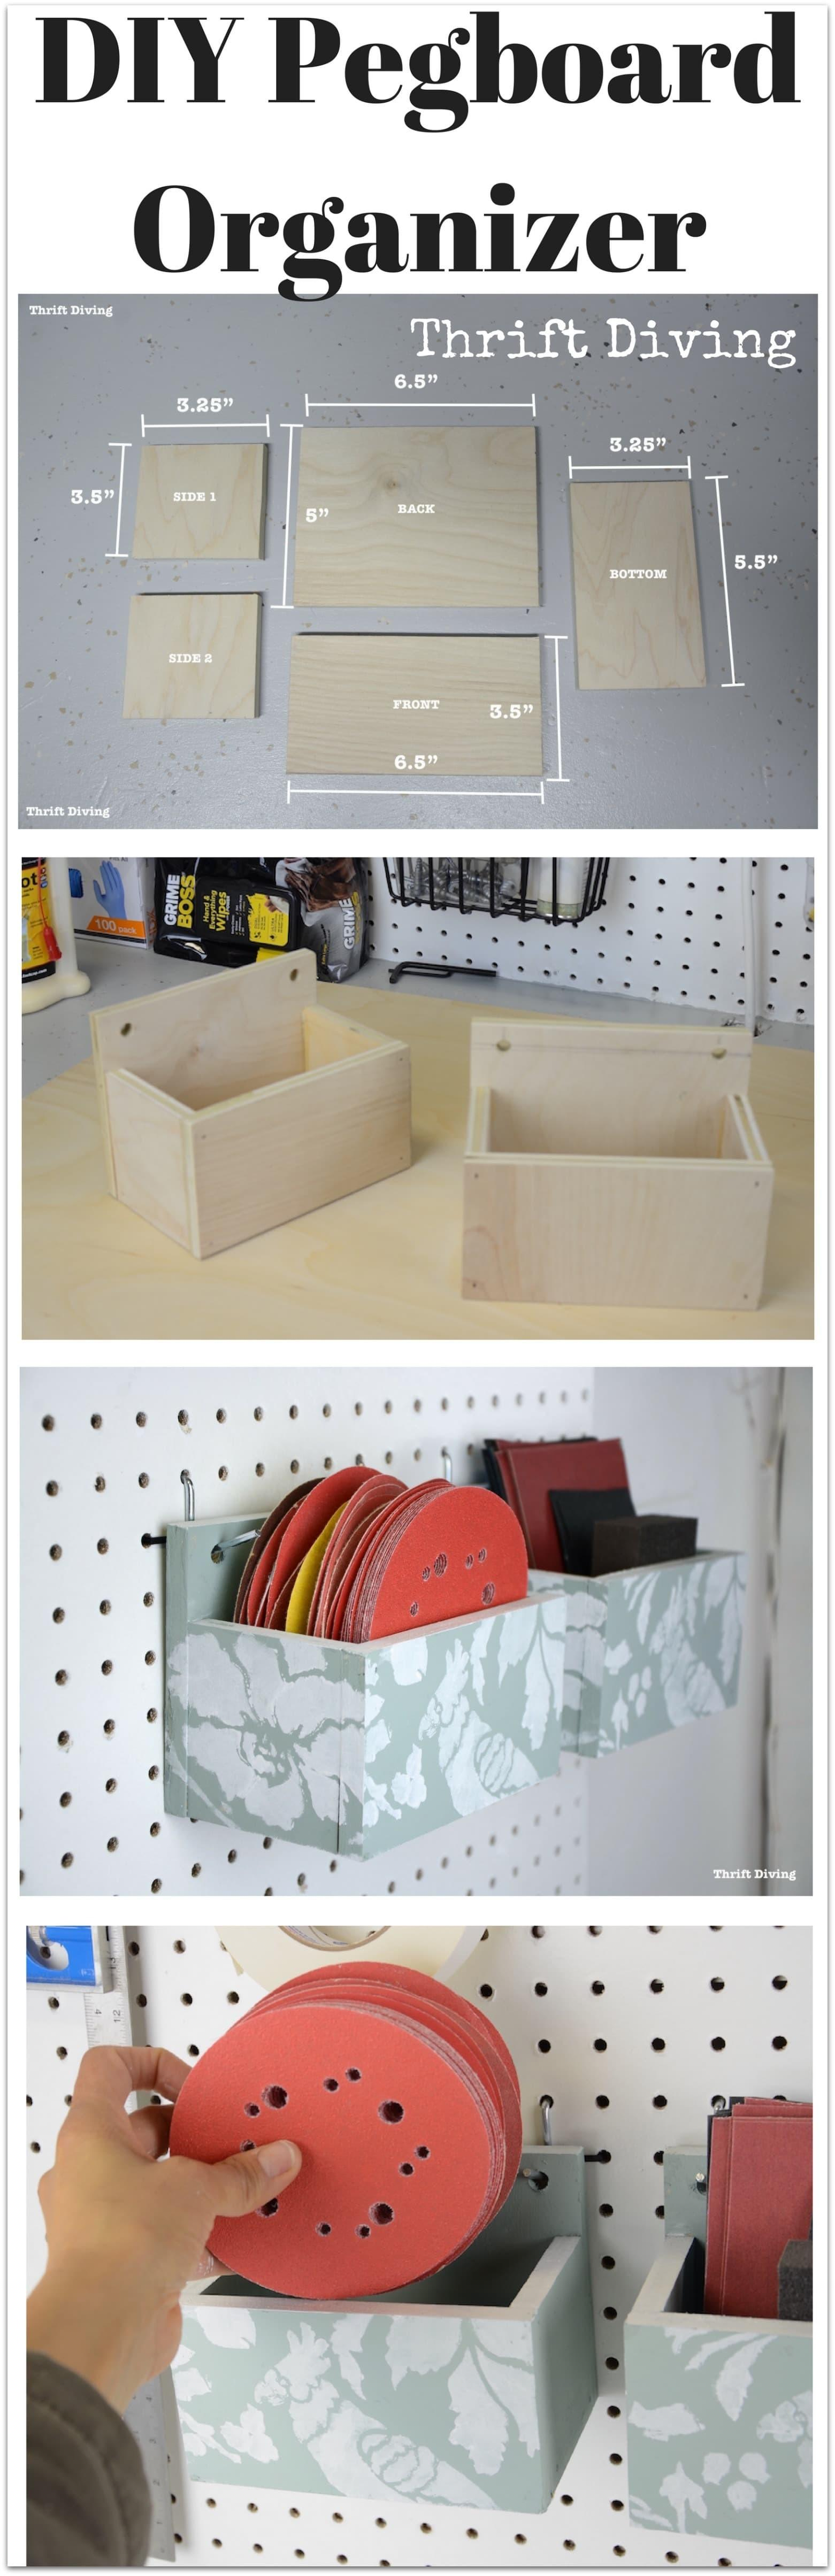 Make Diy Pegboard Organizer Your Garage